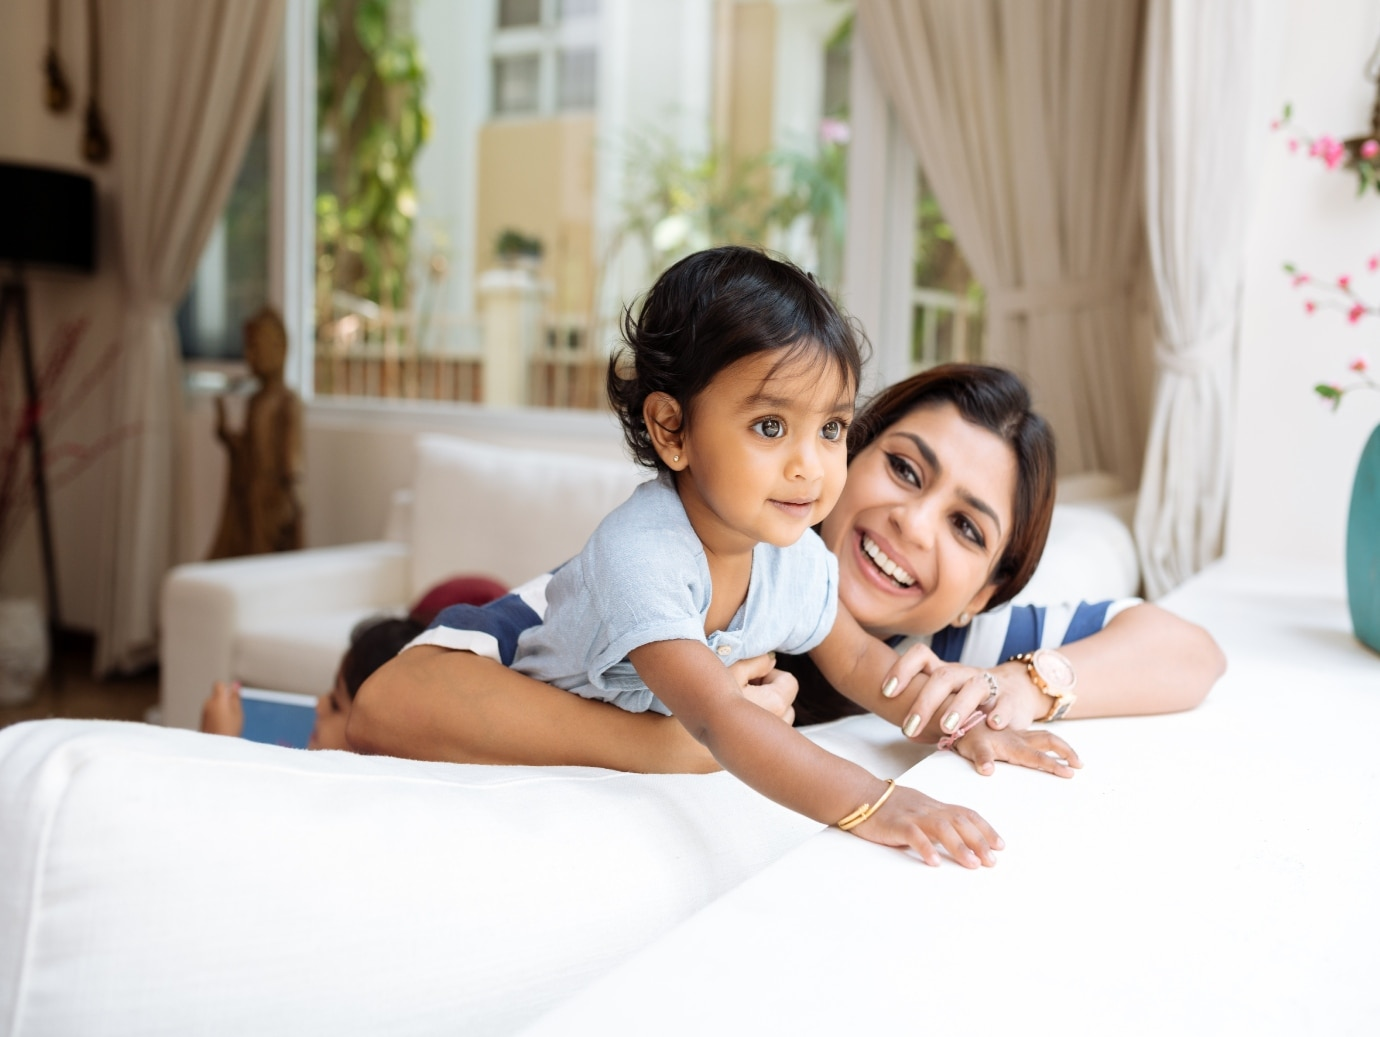 Happy child and mother play on the couch in home that uses a YORK Air Conditioner for reliable operation and comfort.